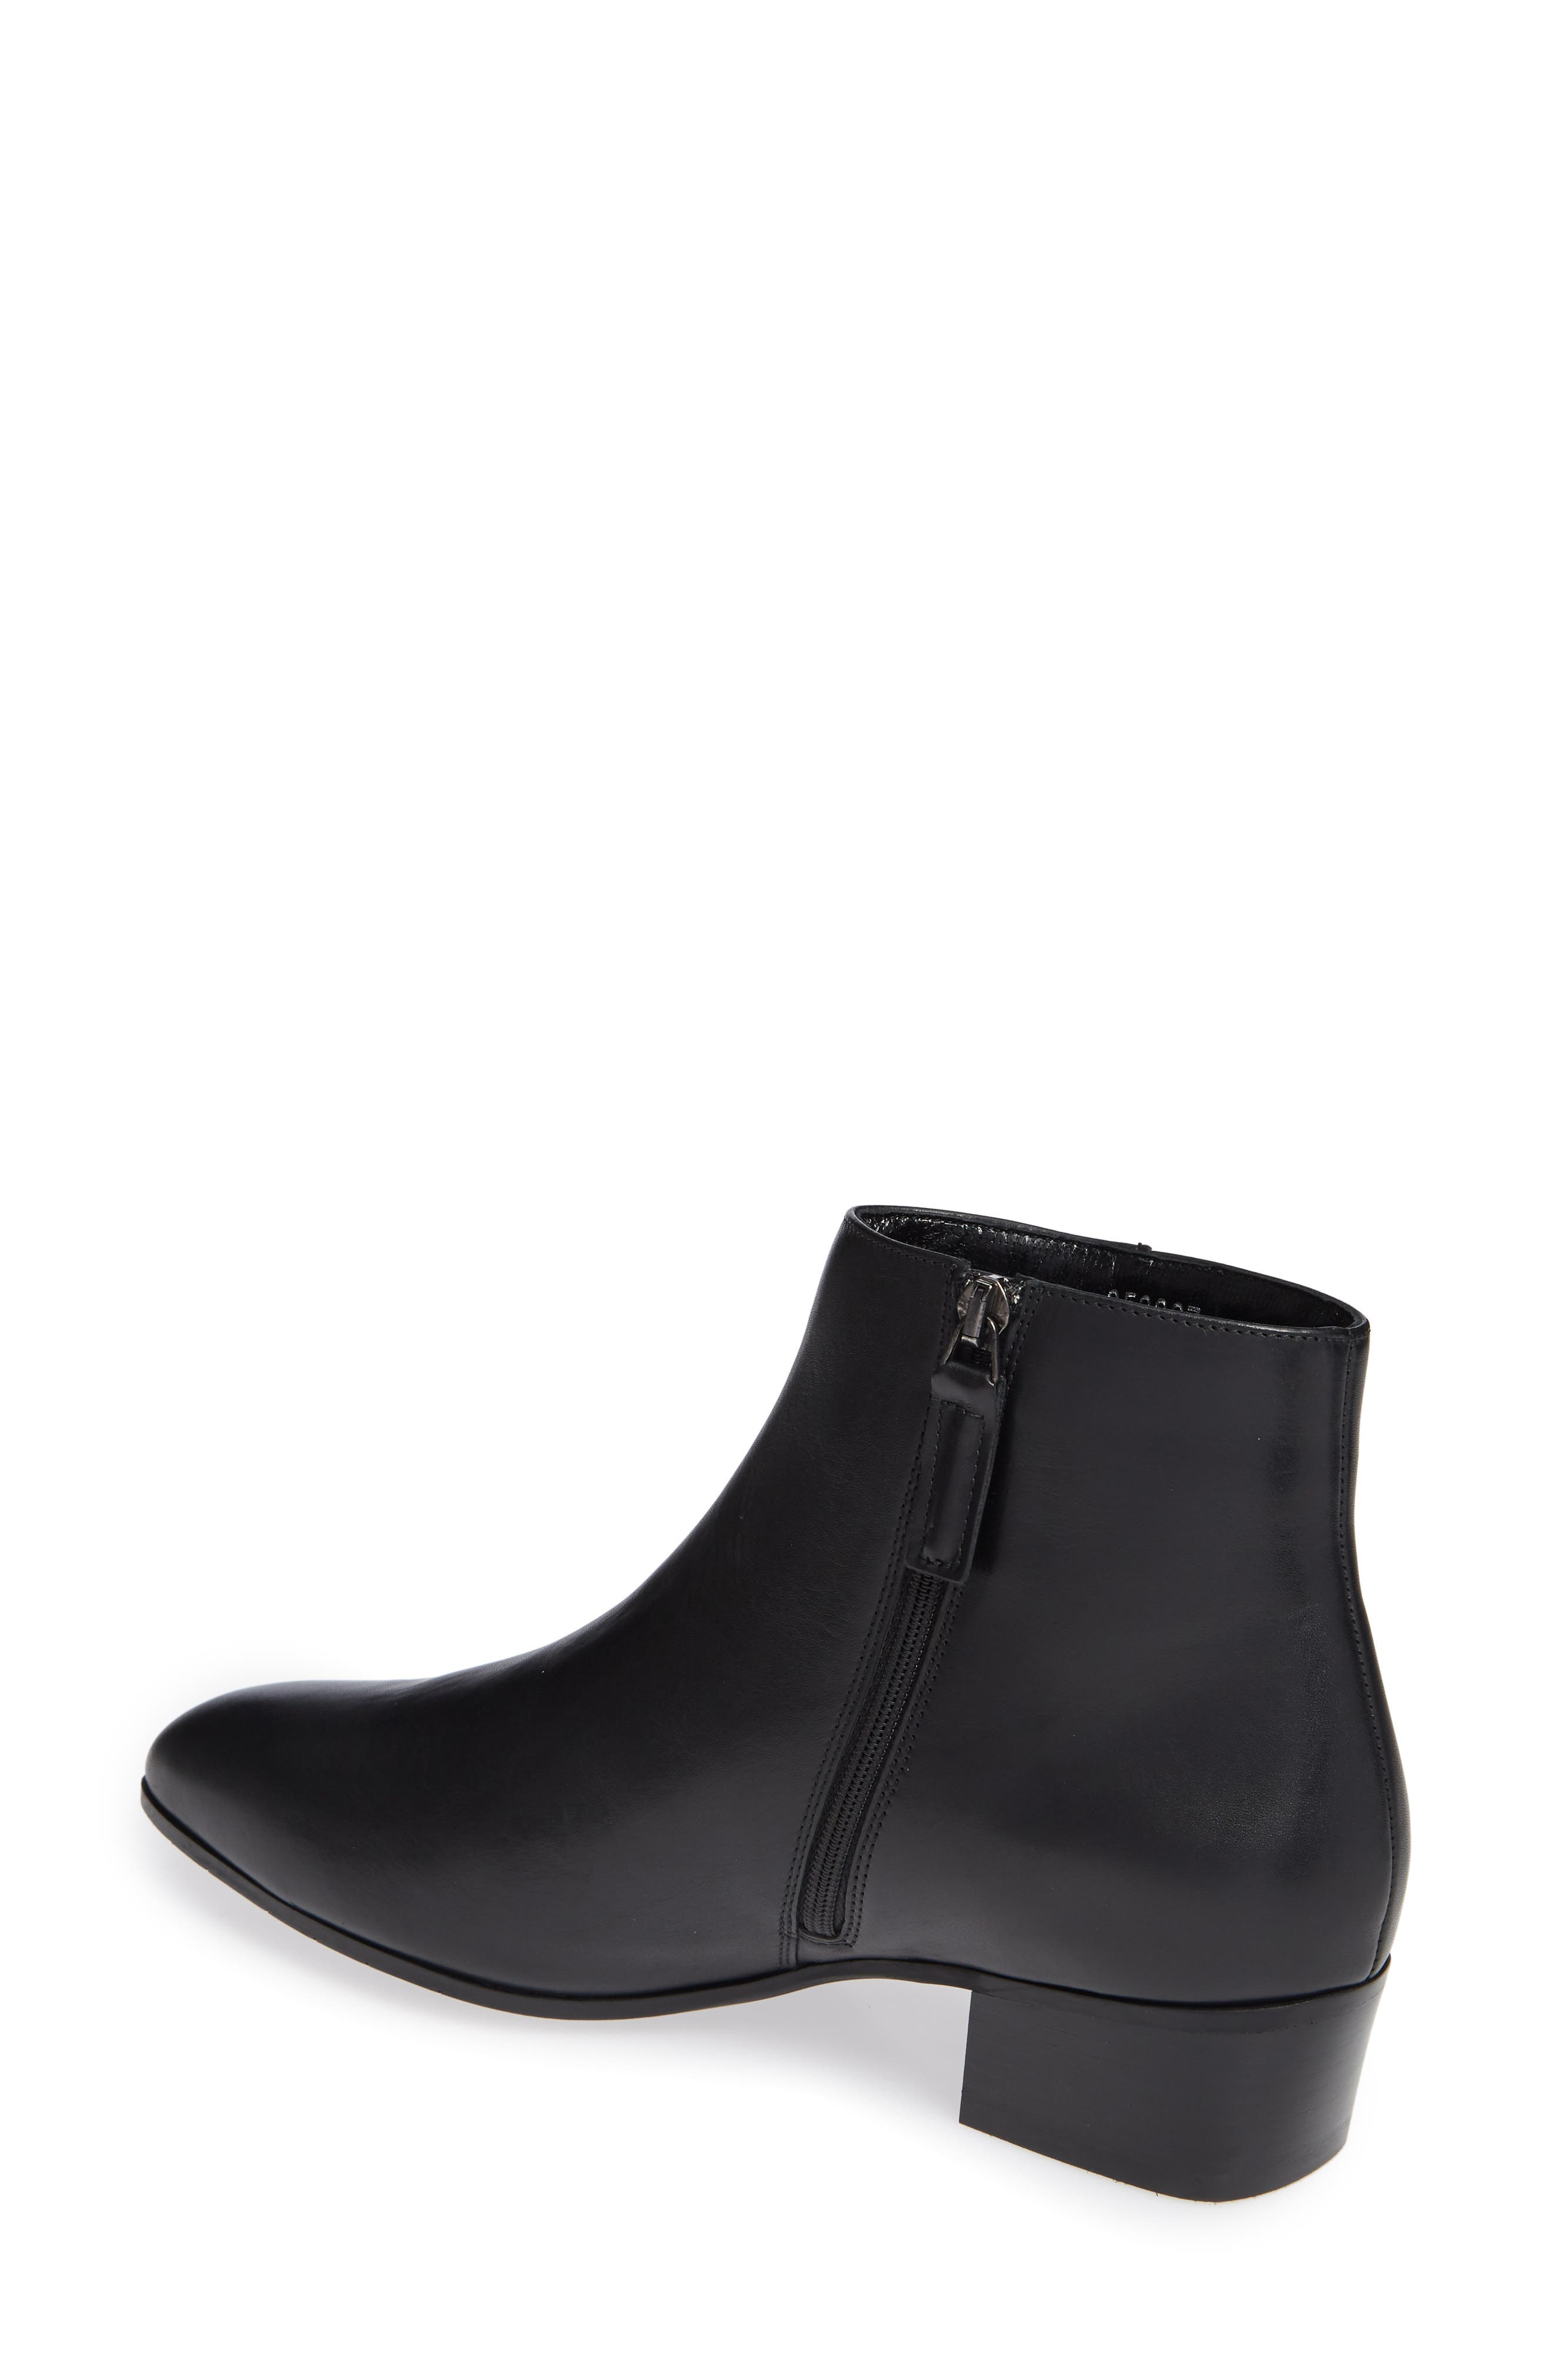 Fuoco Weatherproof Bootie,                             Alternate thumbnail 2, color,                             BLACK LEATHER